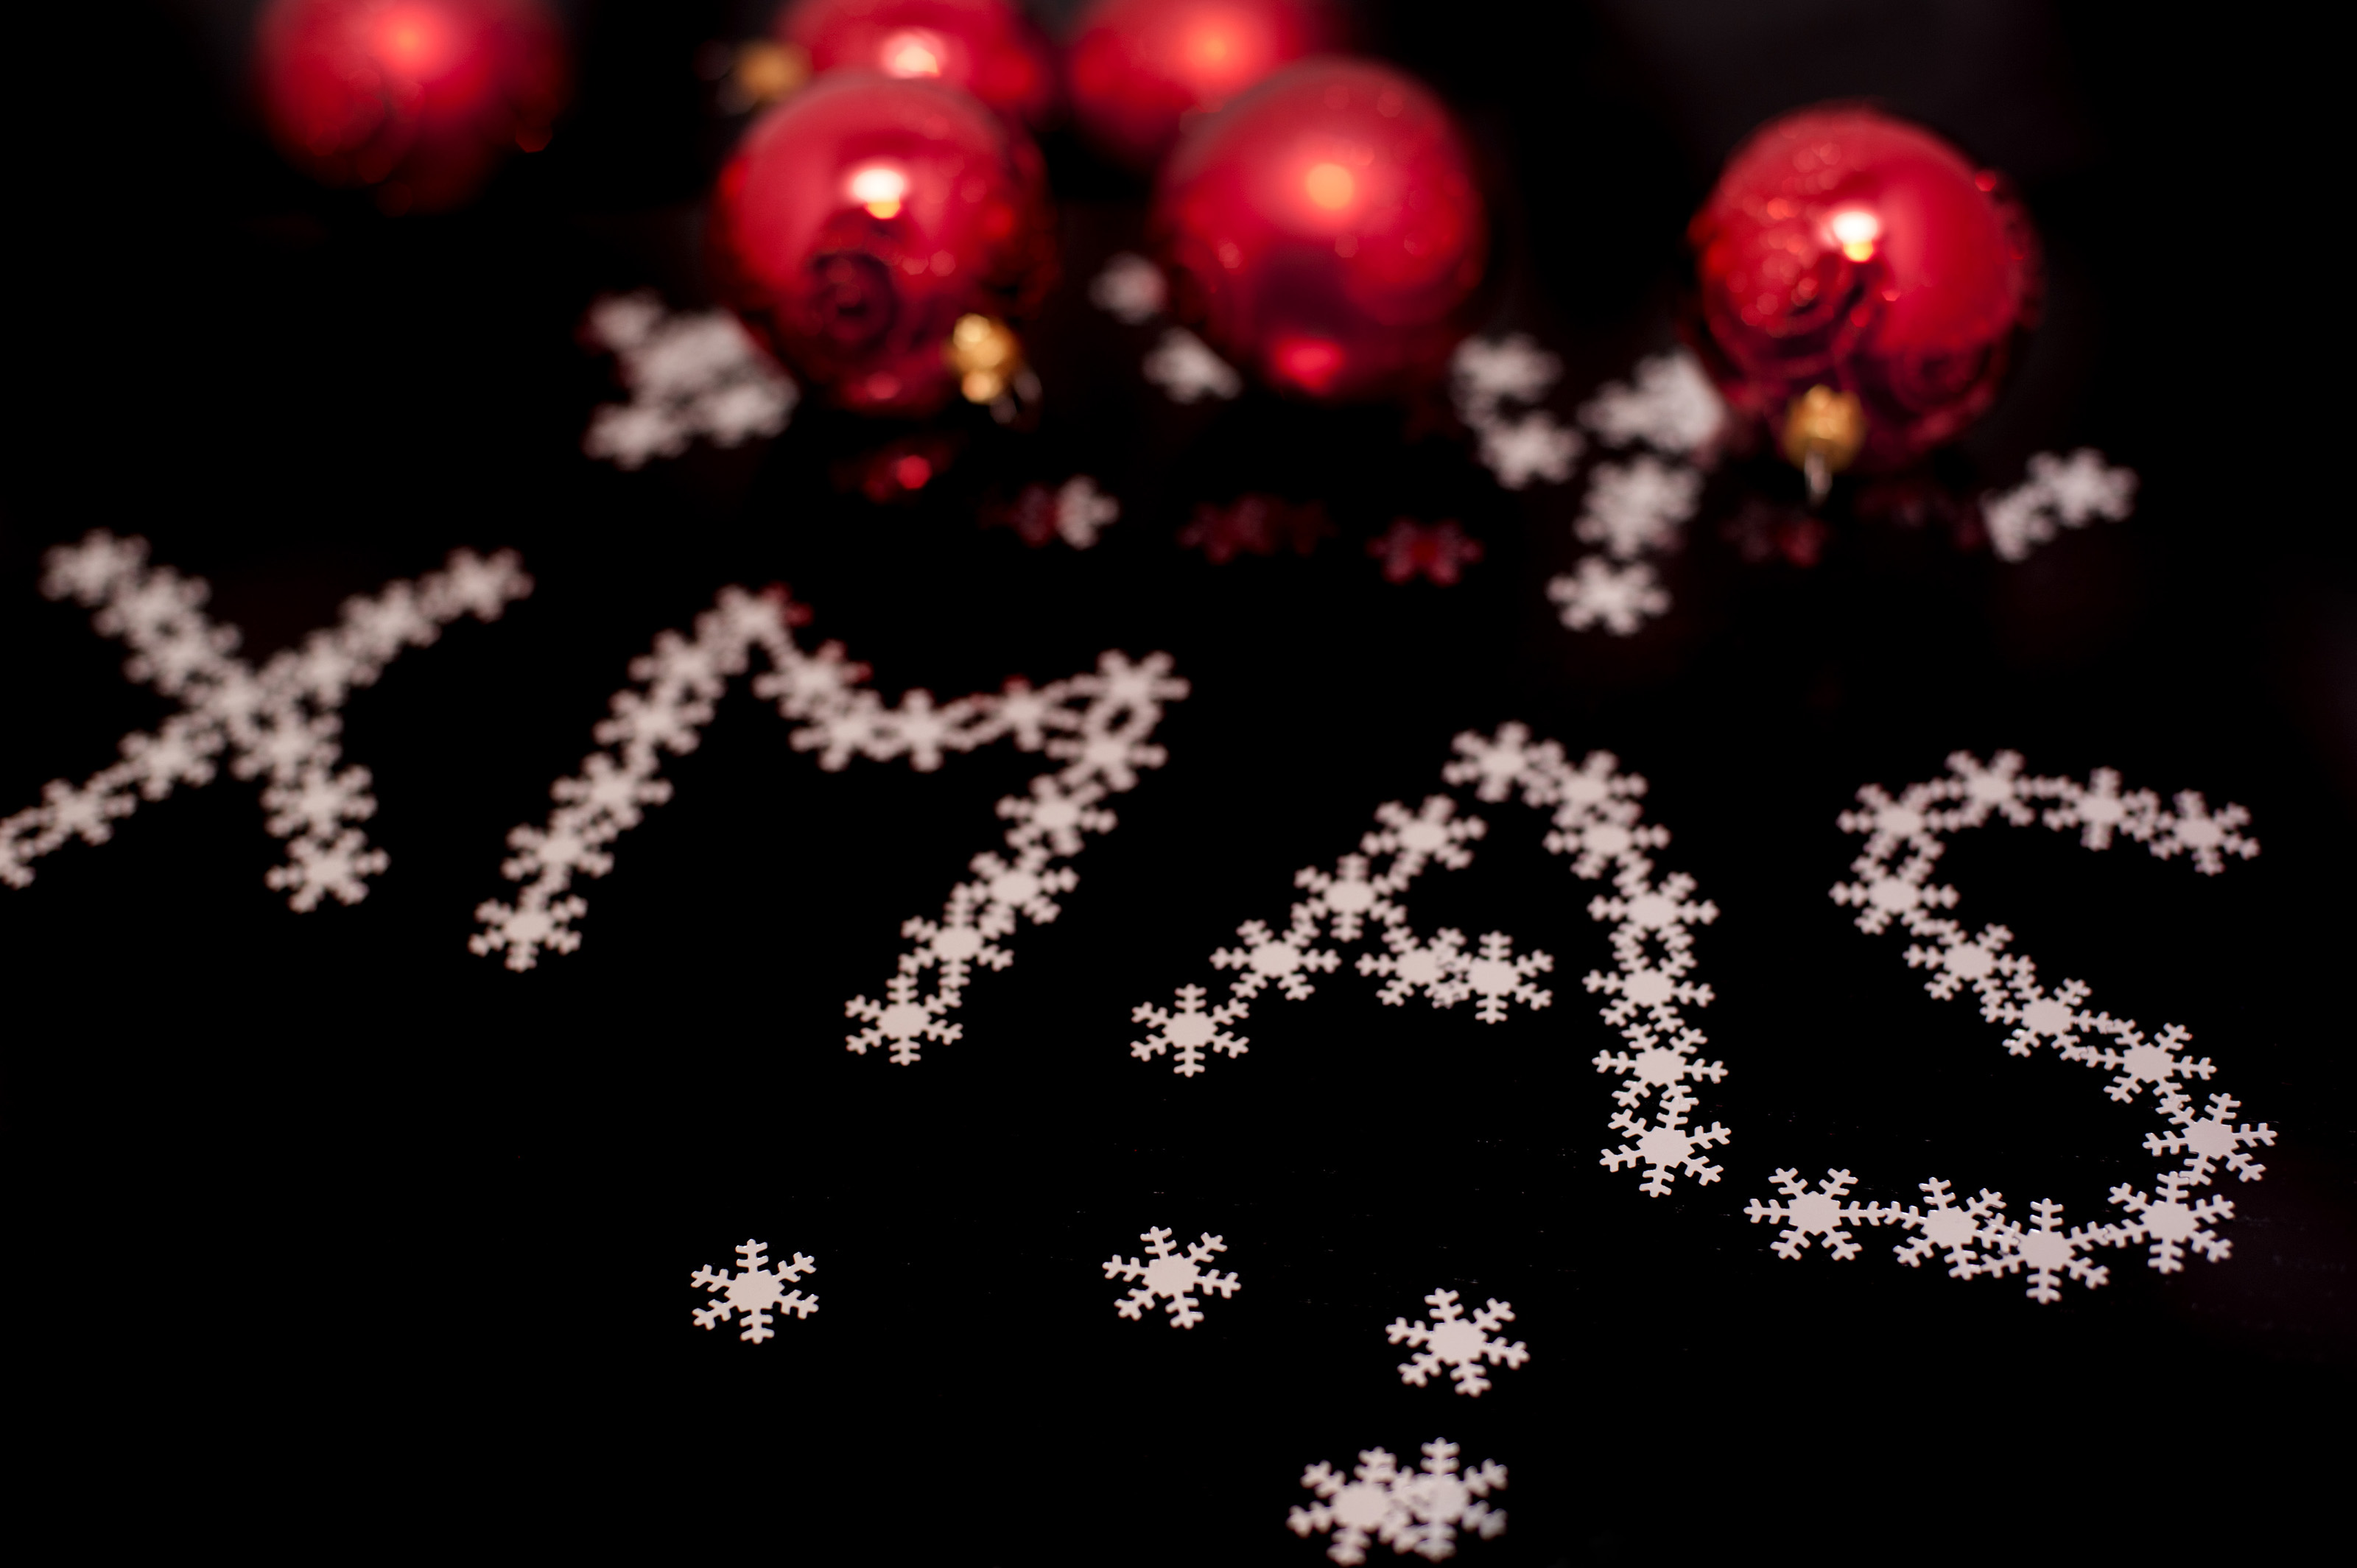 Free stock photo 6836 decorative xmas greeting freeimageslive decorative xmas greeting with tiny little white snaowflakes and red christmas baubles on a black background m4hsunfo